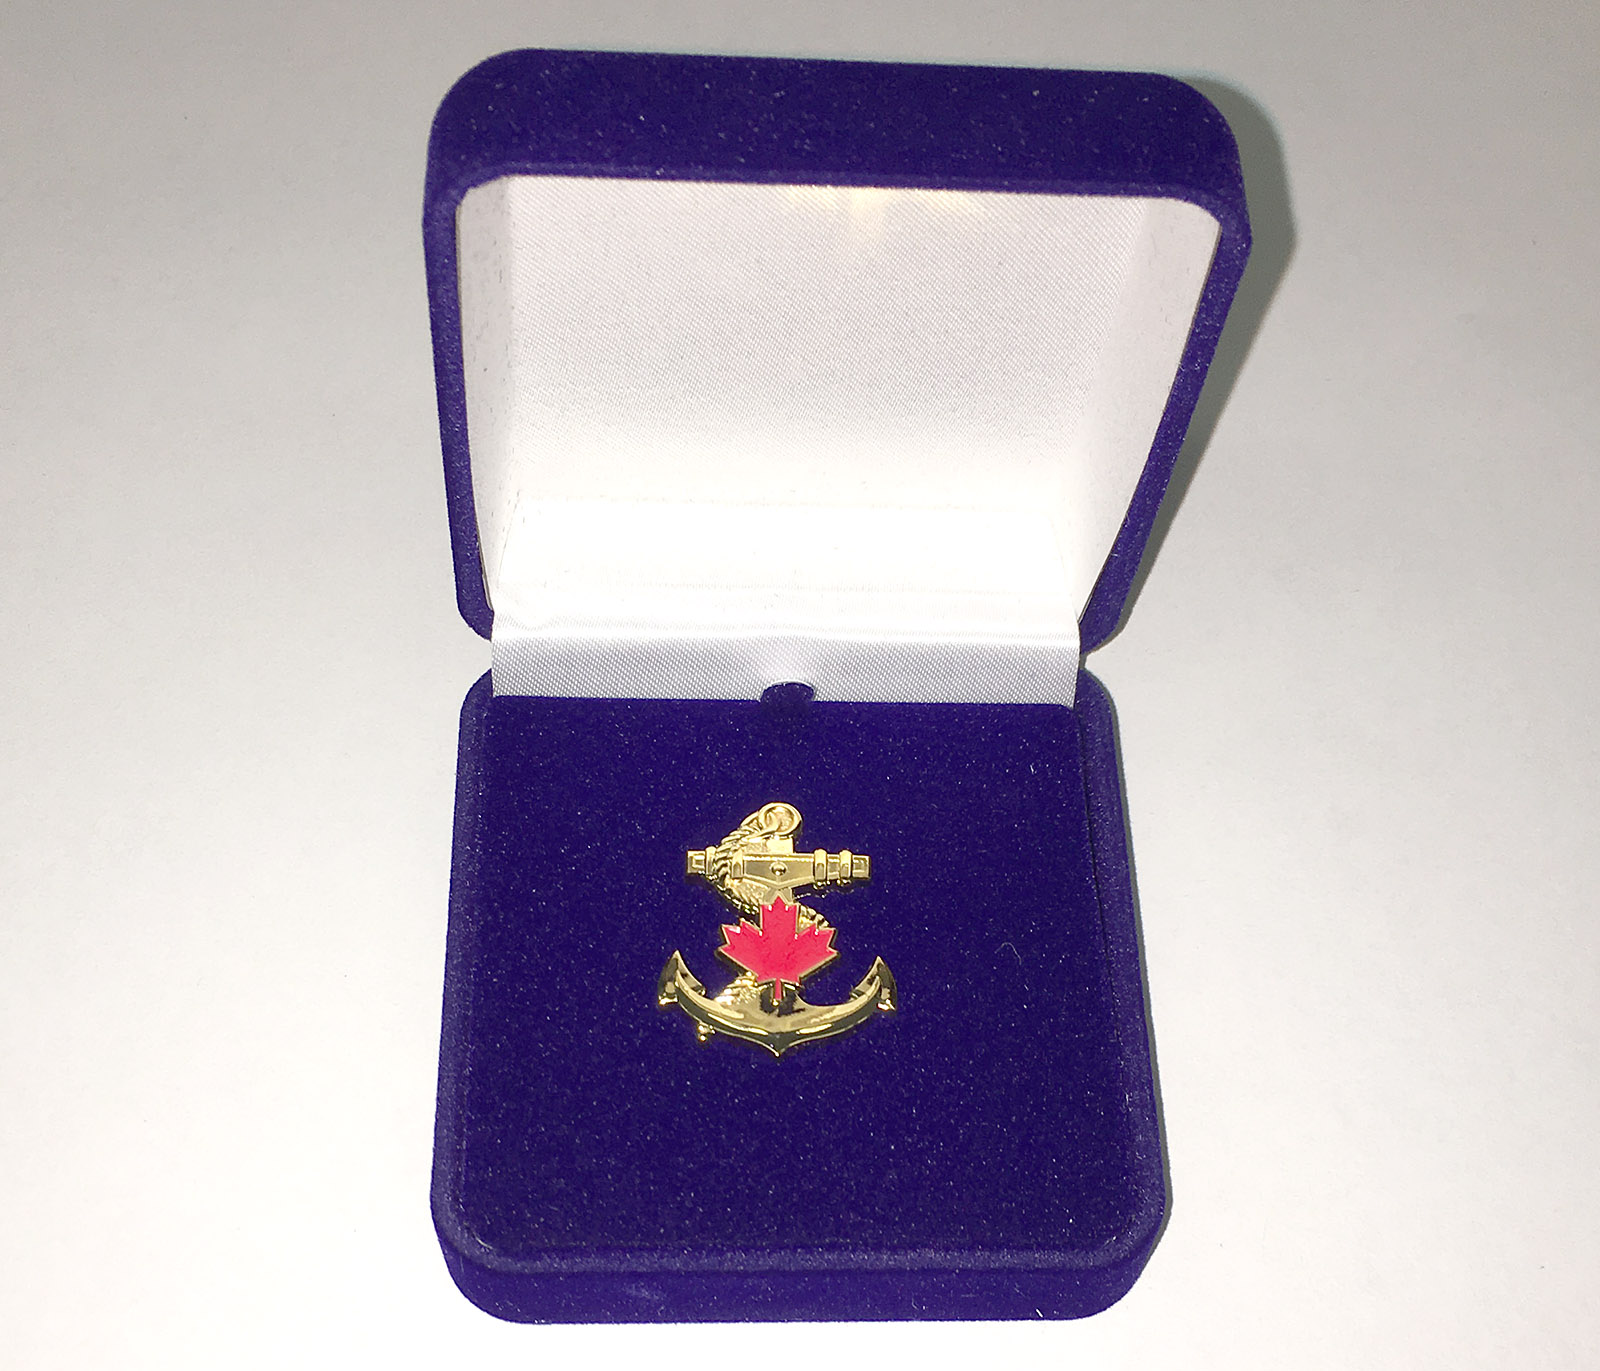 HCapt(N) insignia pin